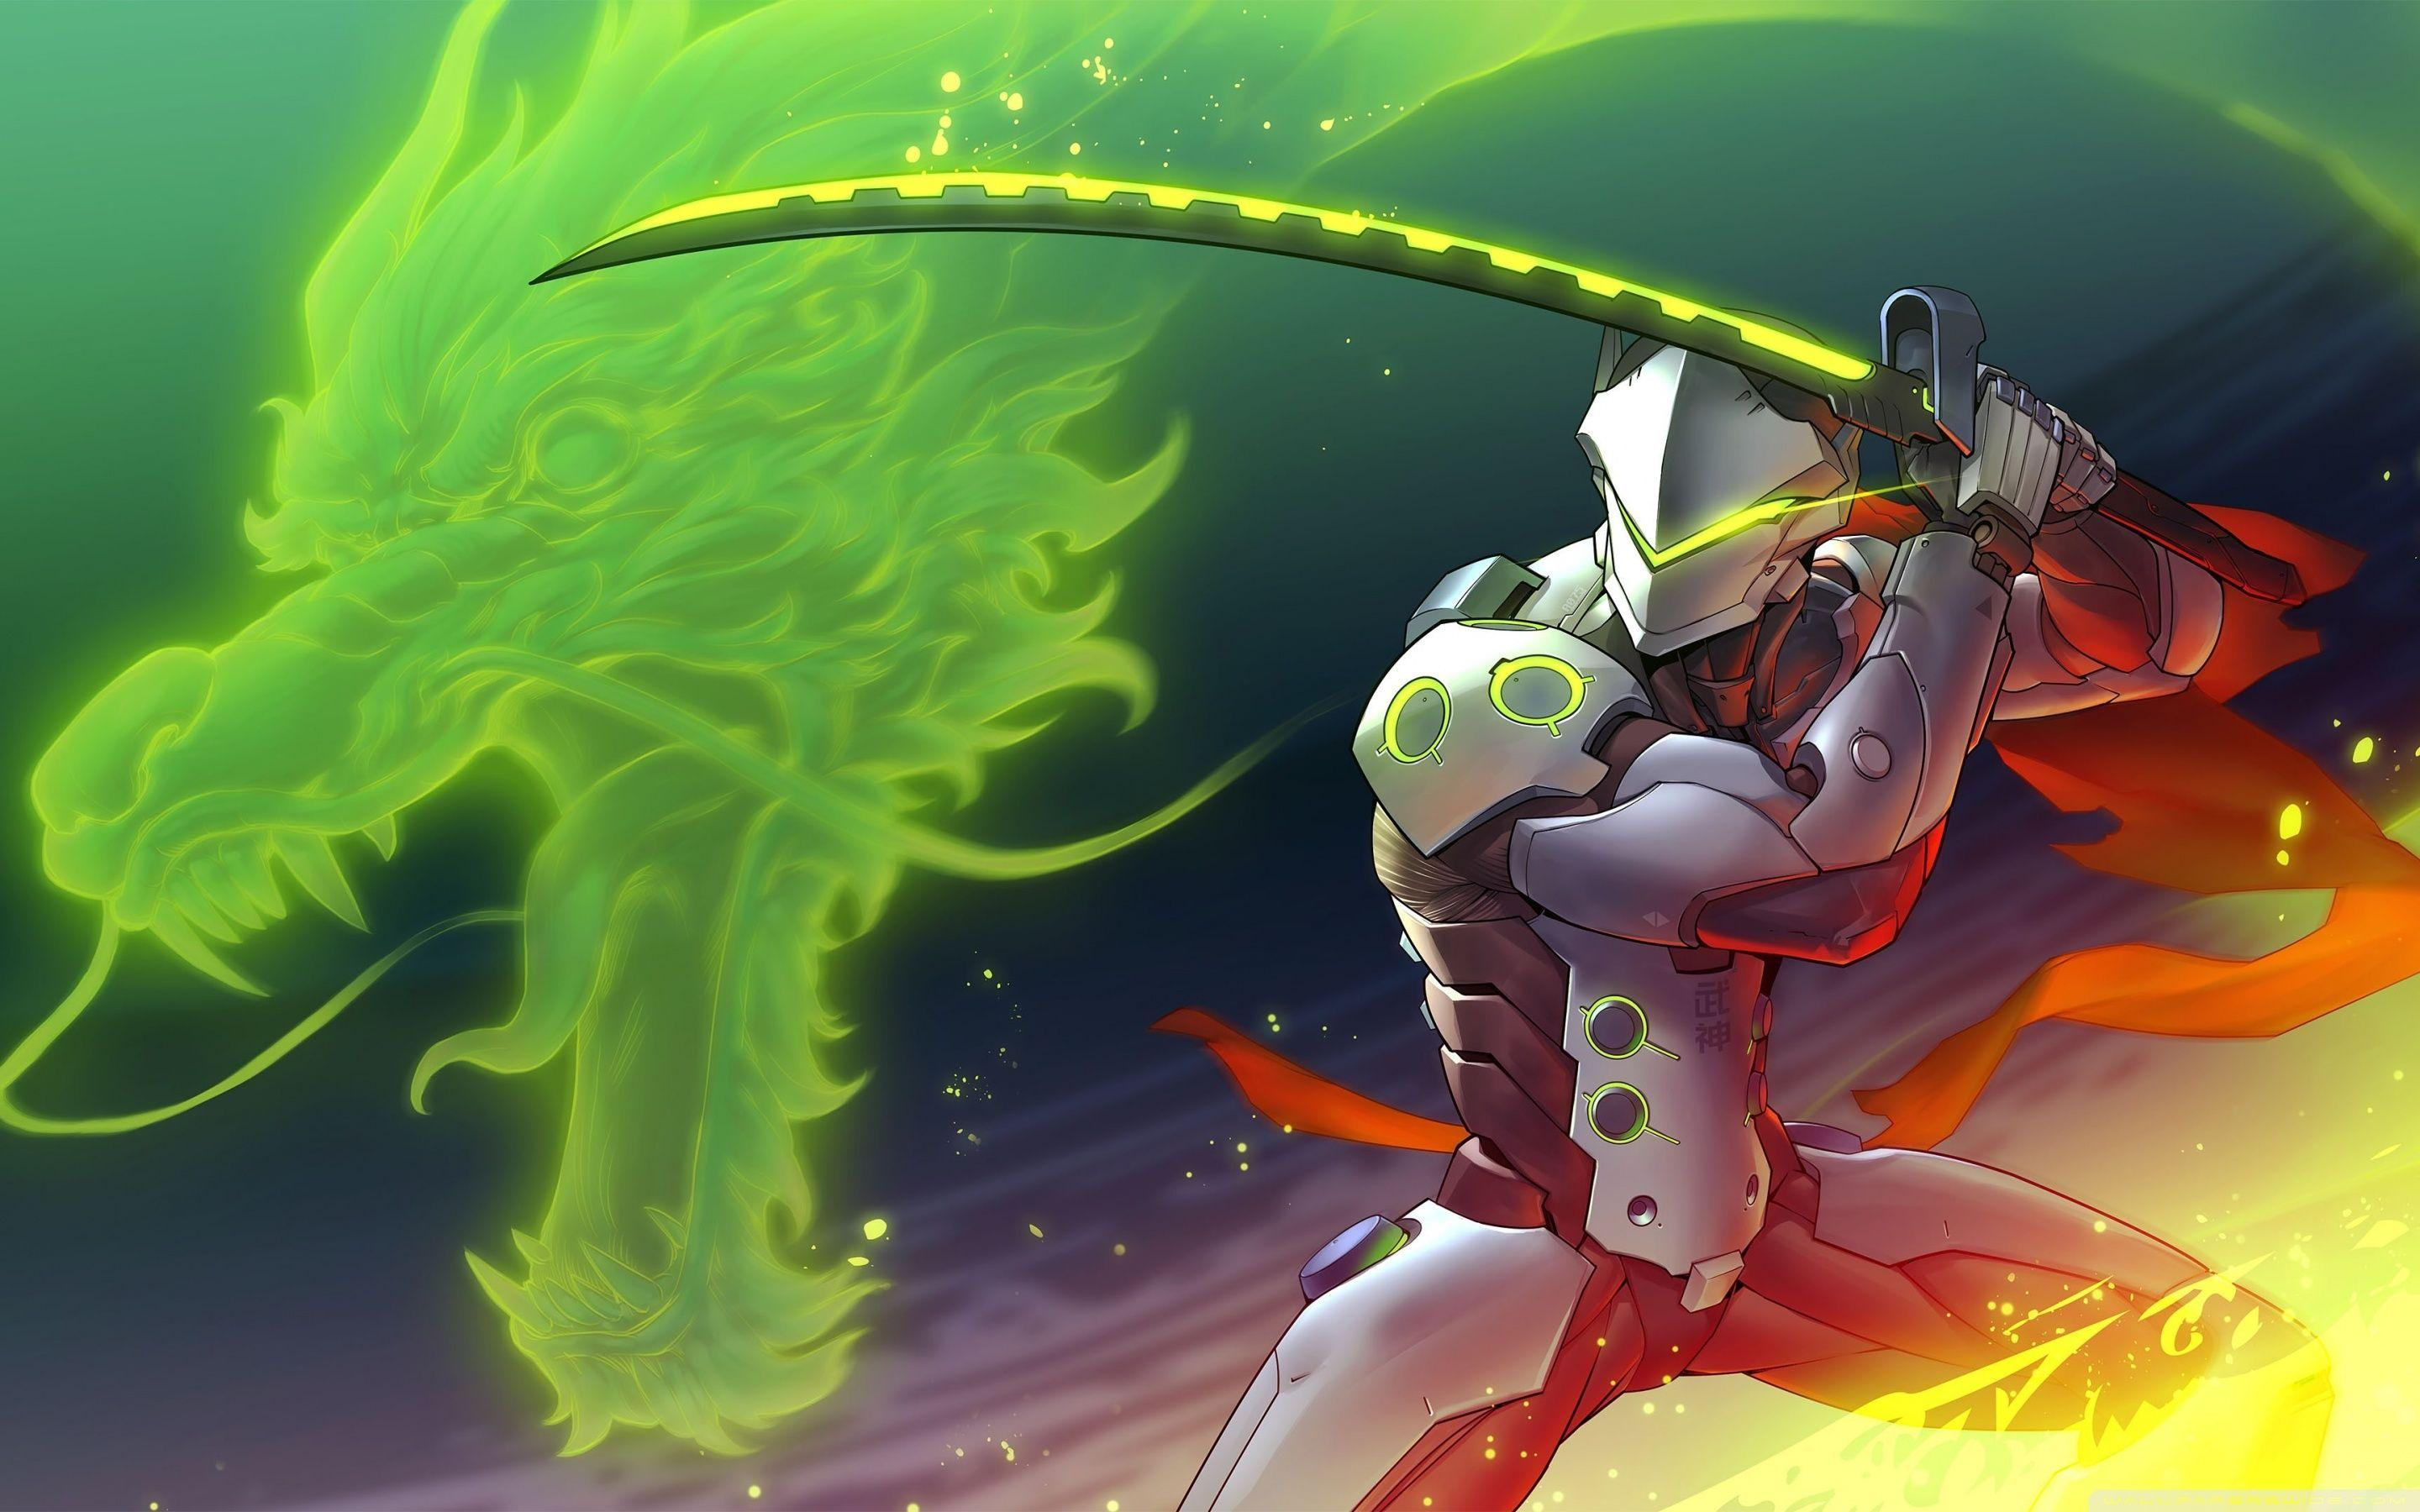 Overwatch Genji Wallpapers - Wallpaper Cave